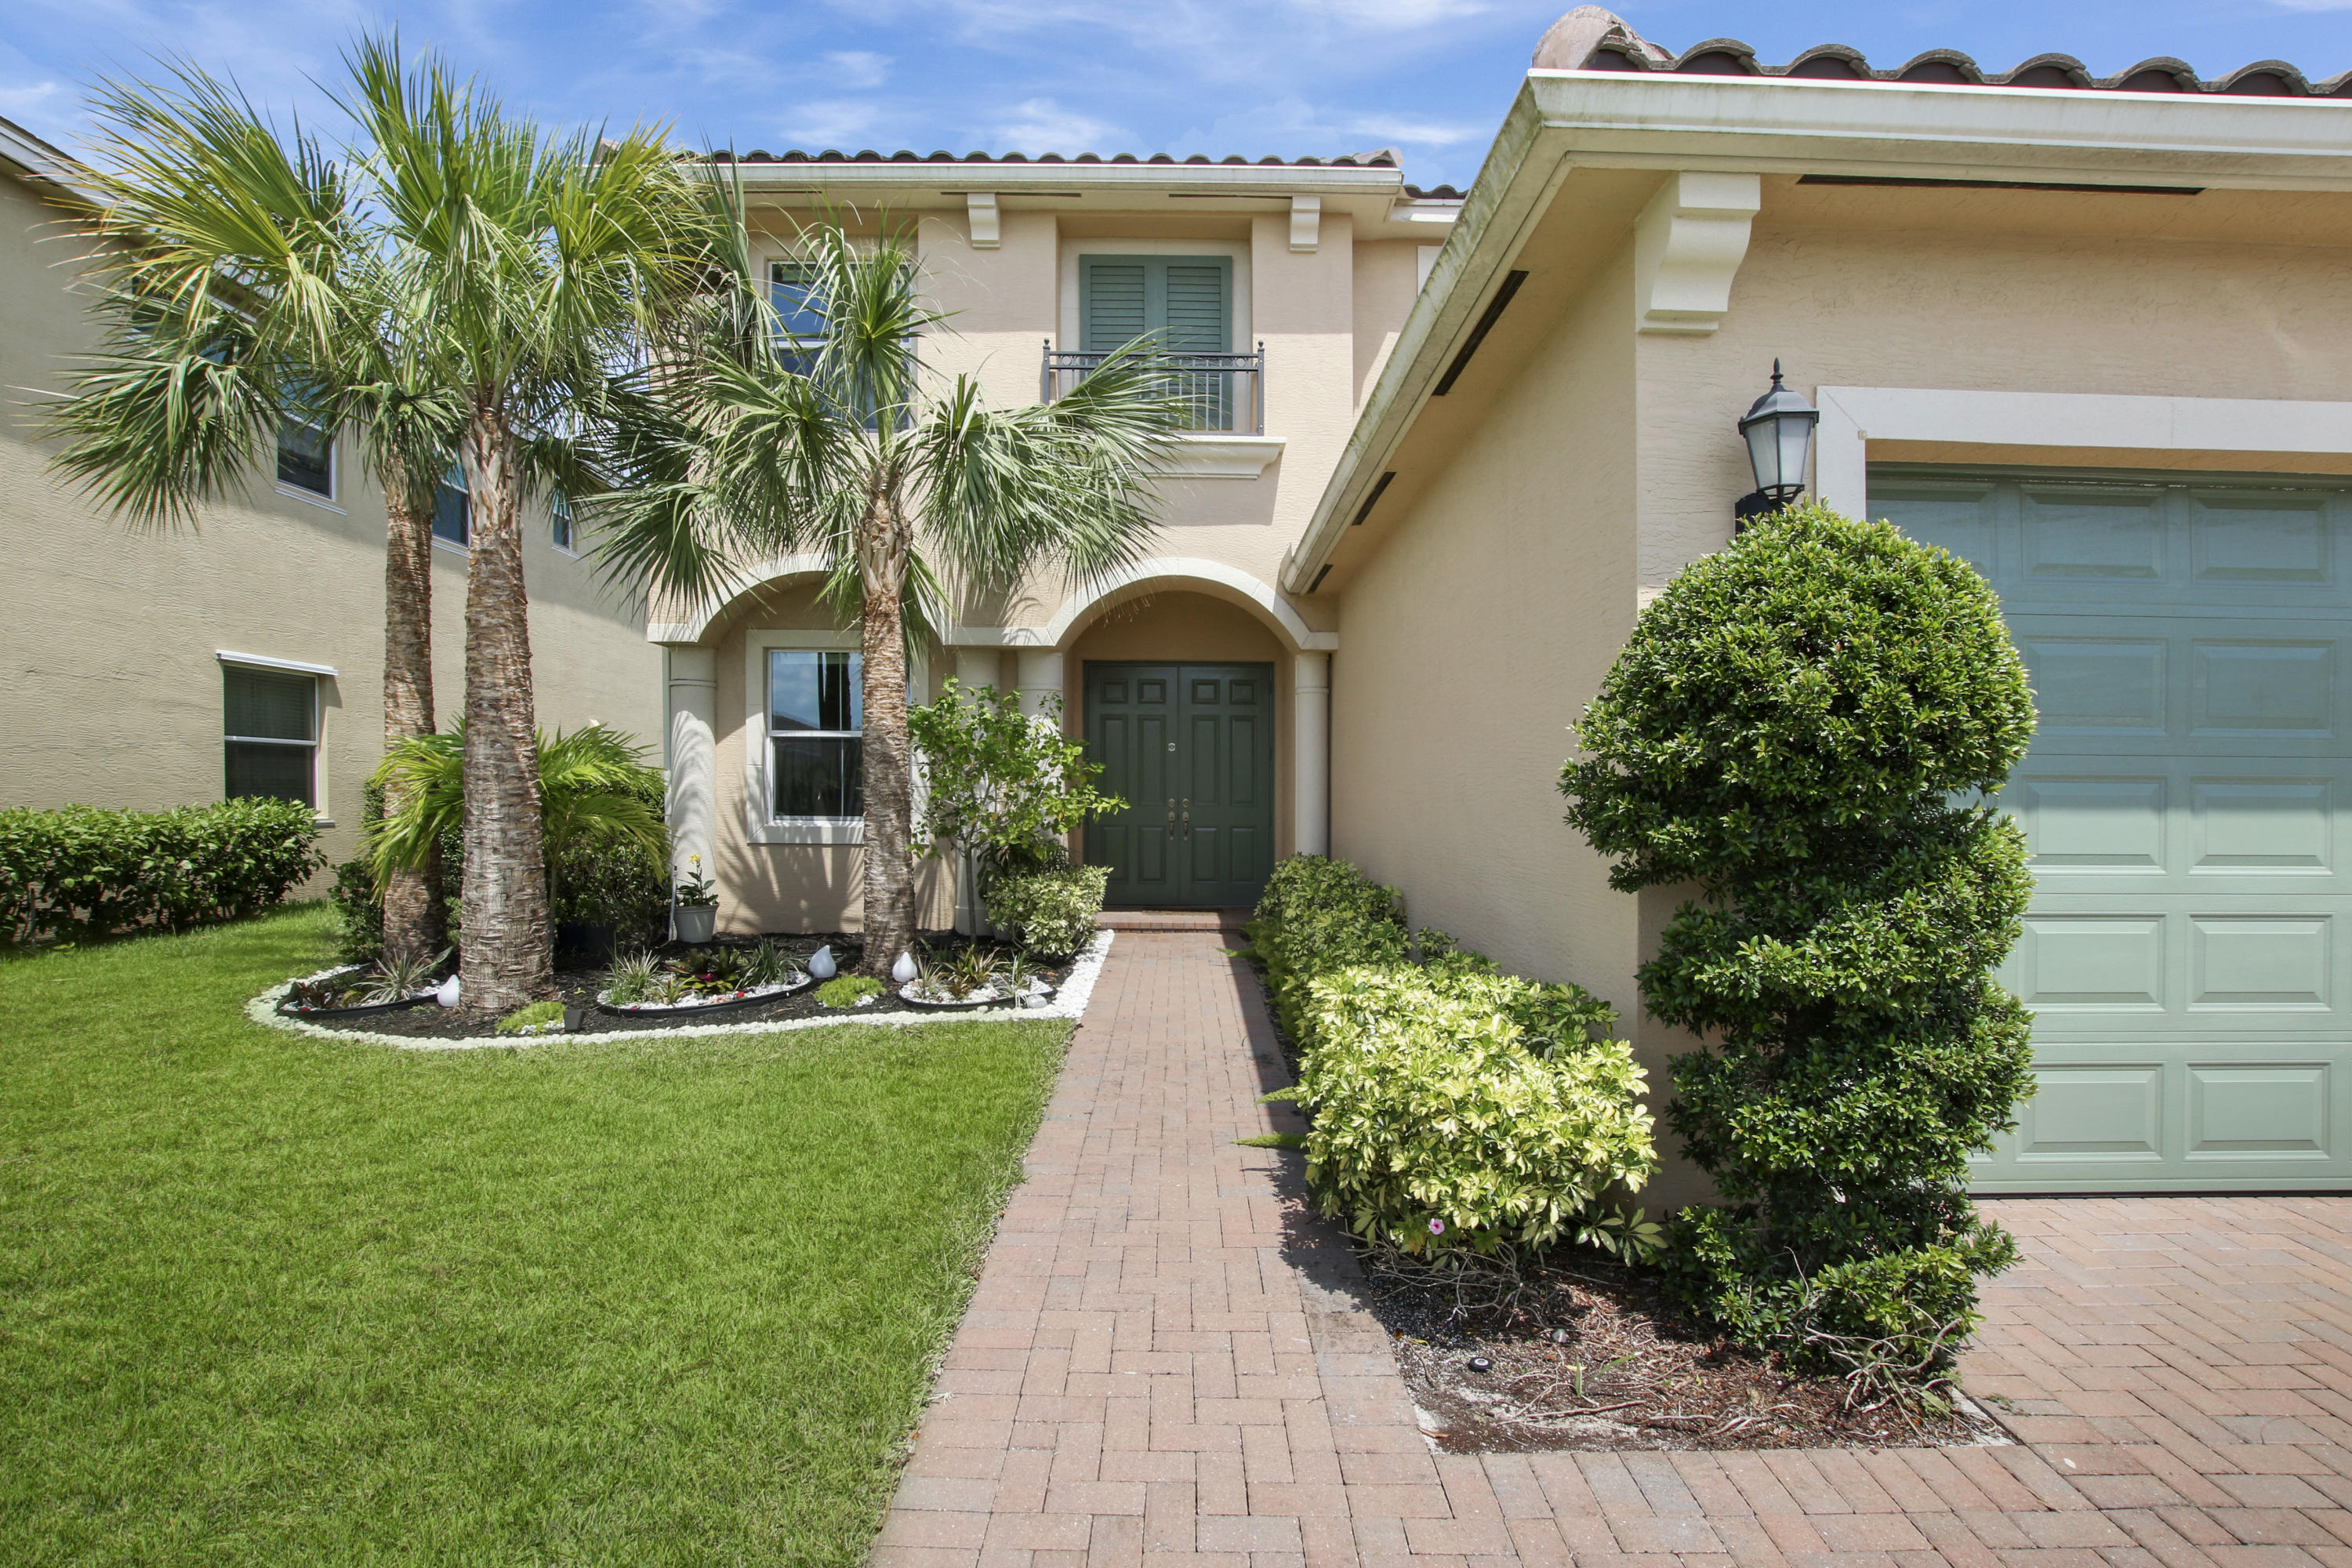 One of Royal Palm Beach 3 Bedroom Homes for Sale at 3012 Strada Court